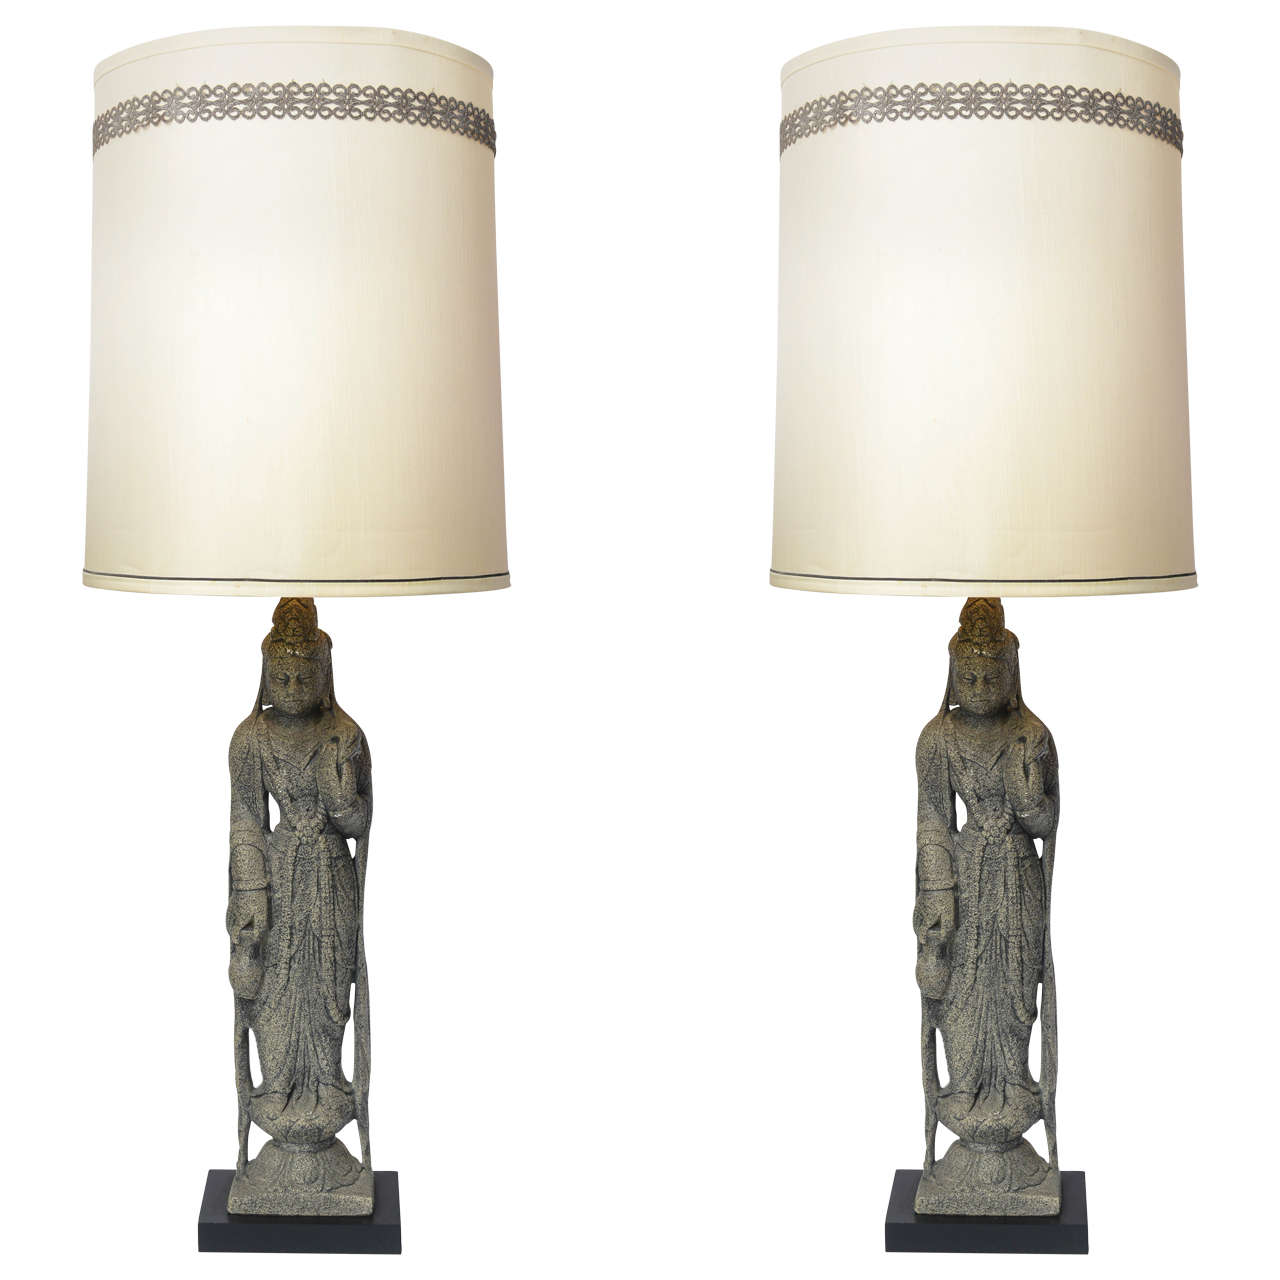 Pair of Vintage Antiqued Kwan Yin Statue Table Lamps For Sale at 1stdibs